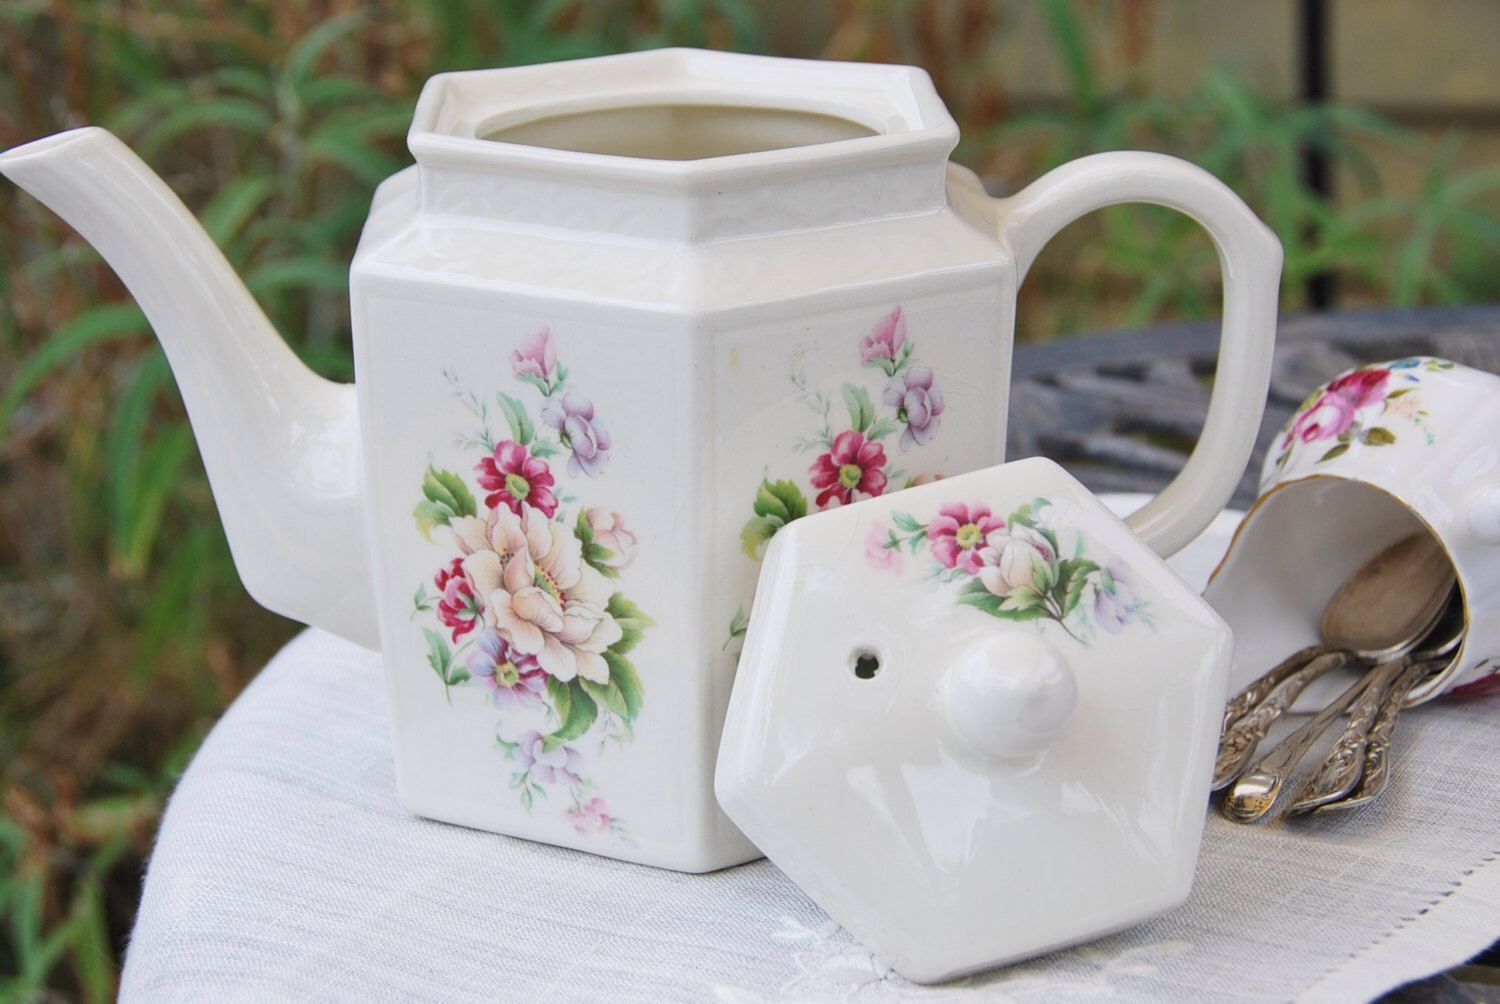 Charming ARTHUR WOOD and SONS Six-Sided Teapot, Cream and Floral, Embossed, England by DadsTeacups on Etsy https://www.etsy.com/listing/210719186/charming-arthur-wood-and-sons-six-sided